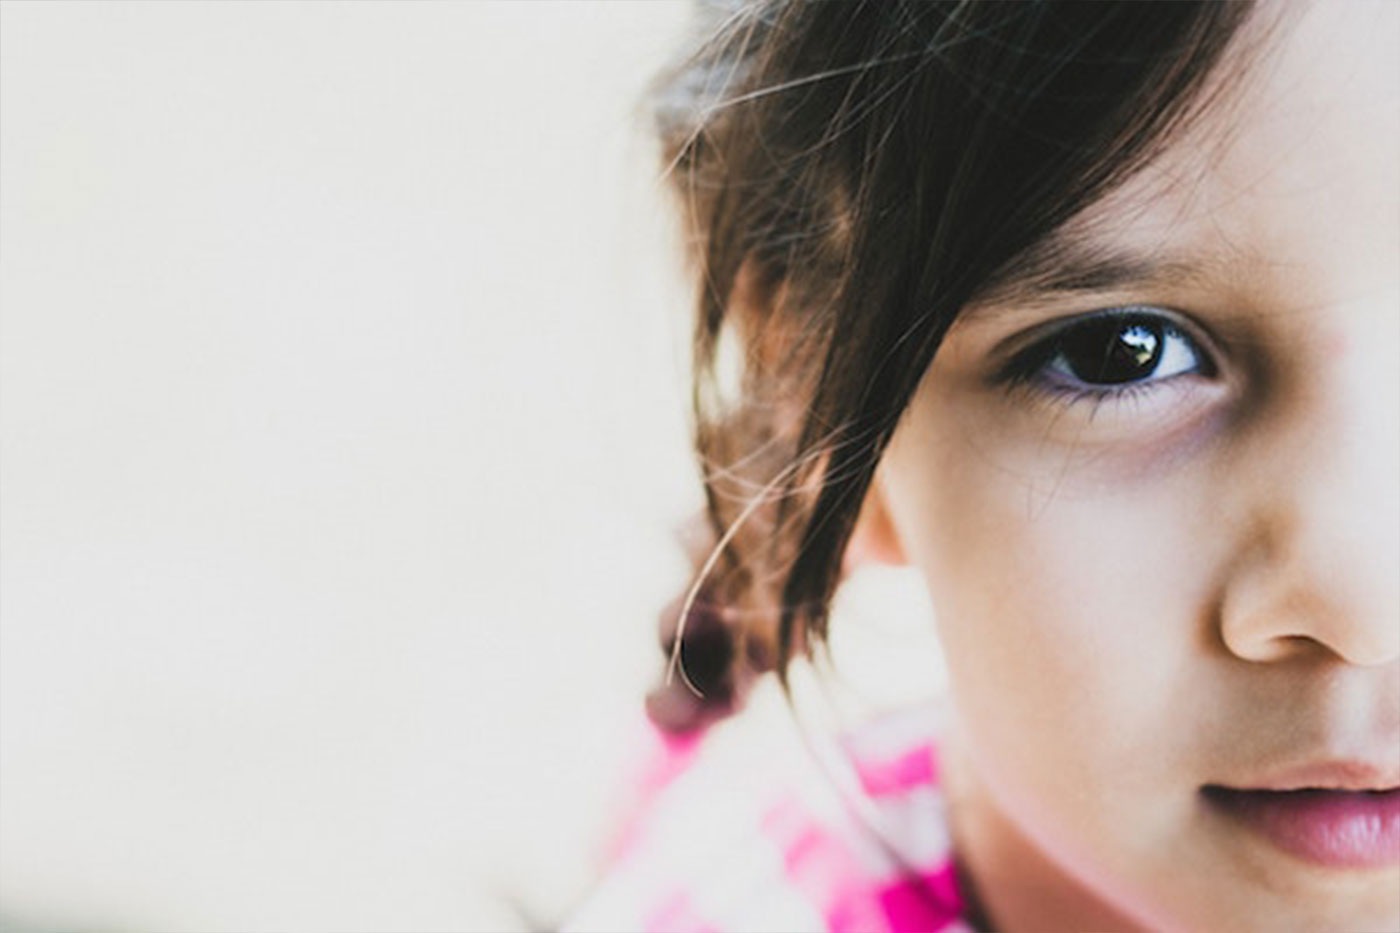 Close-up shot of a young girl looking into the camera